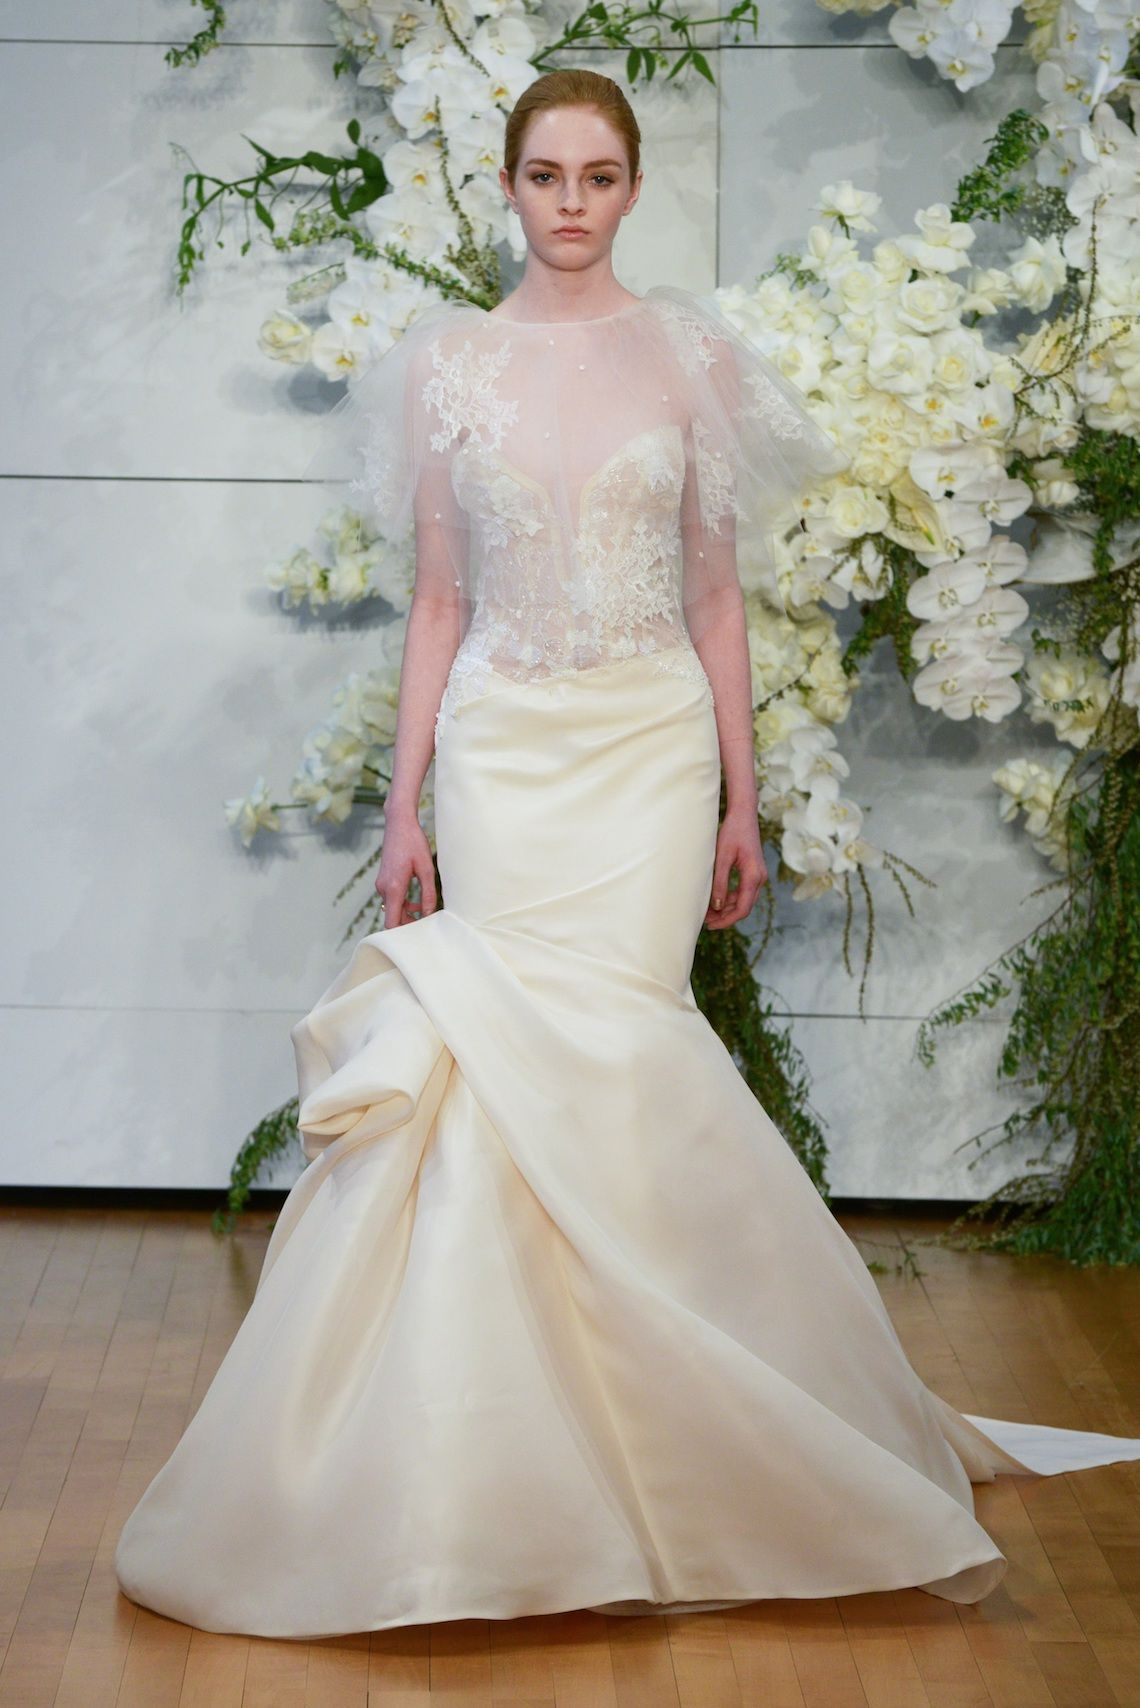 Best of Bridal Fashion Week: Monique Lhuillier Wedding Dress ...